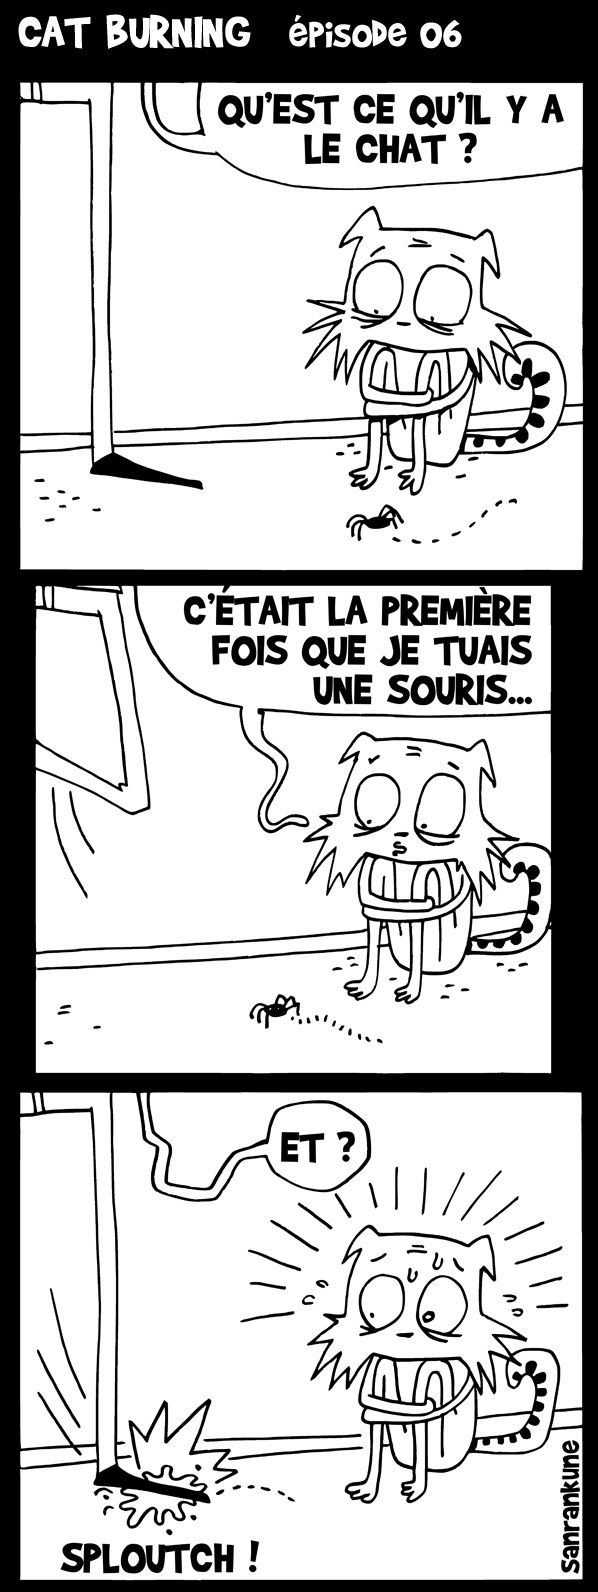 Cat_burning_blog_06_chasser_chat_trous_souris_dessin_araign.jpg